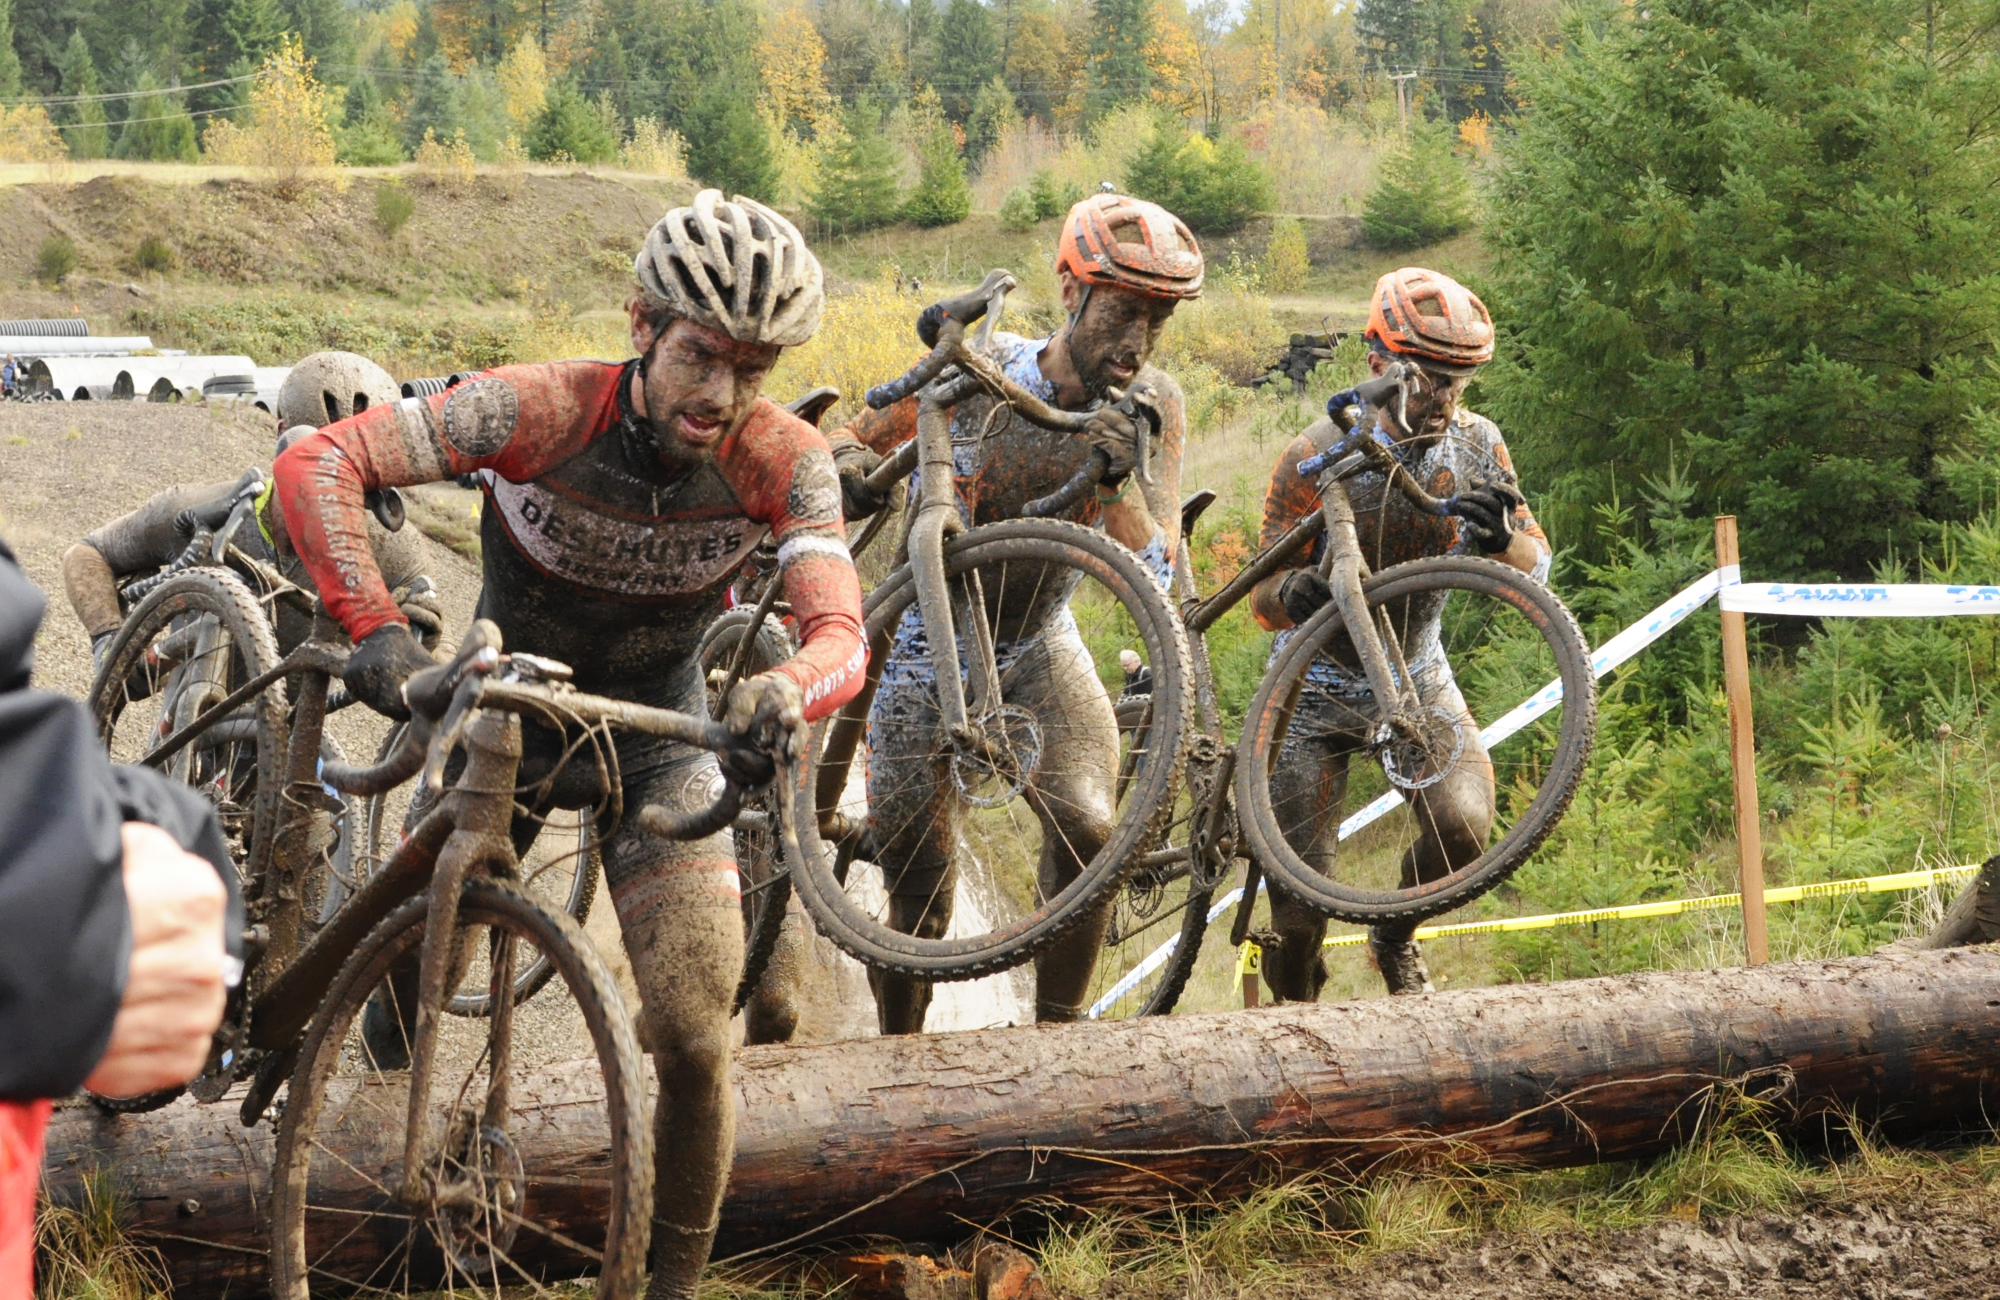 SellwoodCycle_CCBP_47